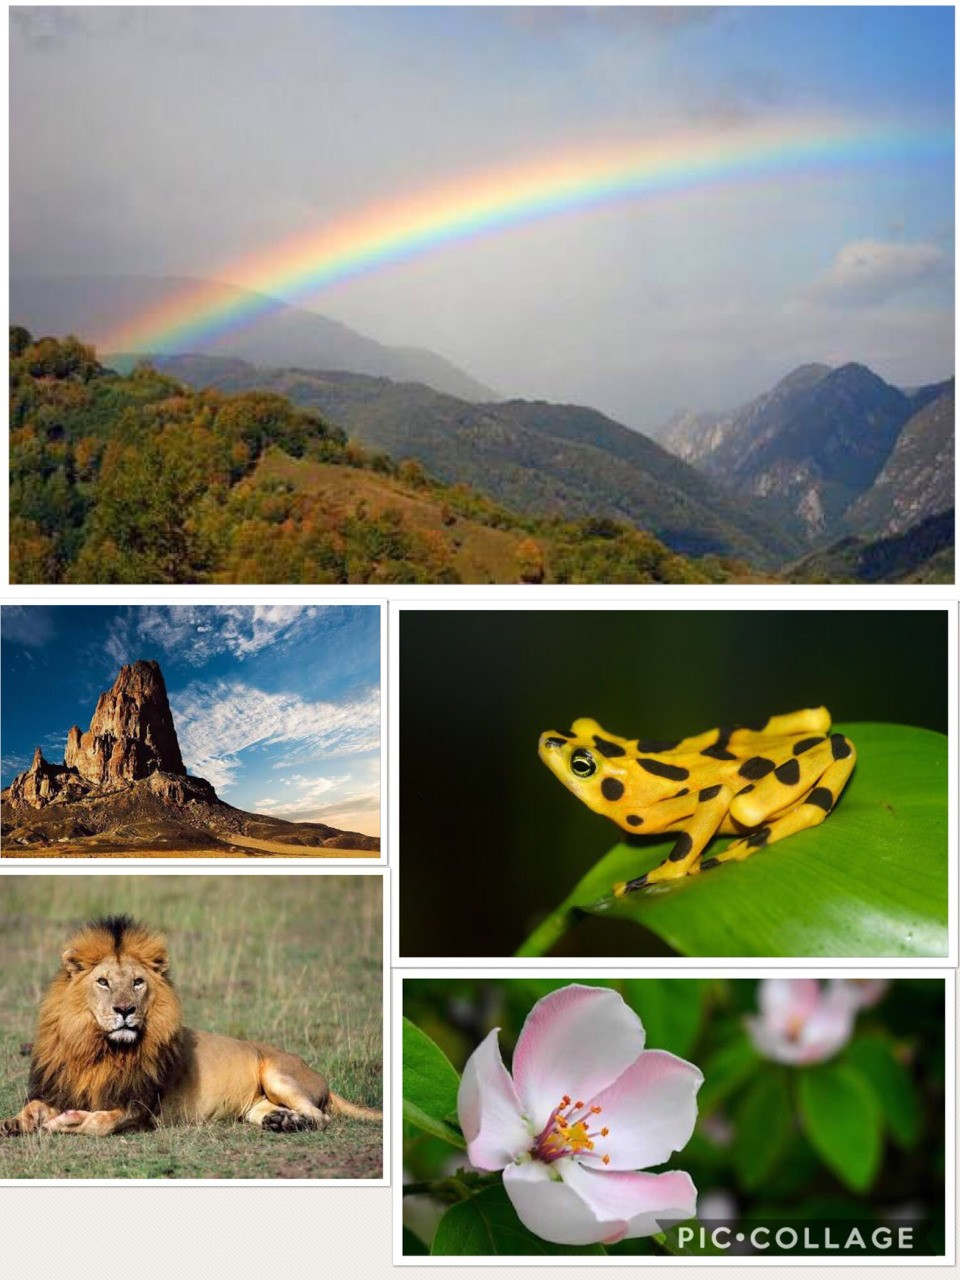 Task 3: This image is showing us how beautiful and creative god is and his creativity is shown through many objects and animal.